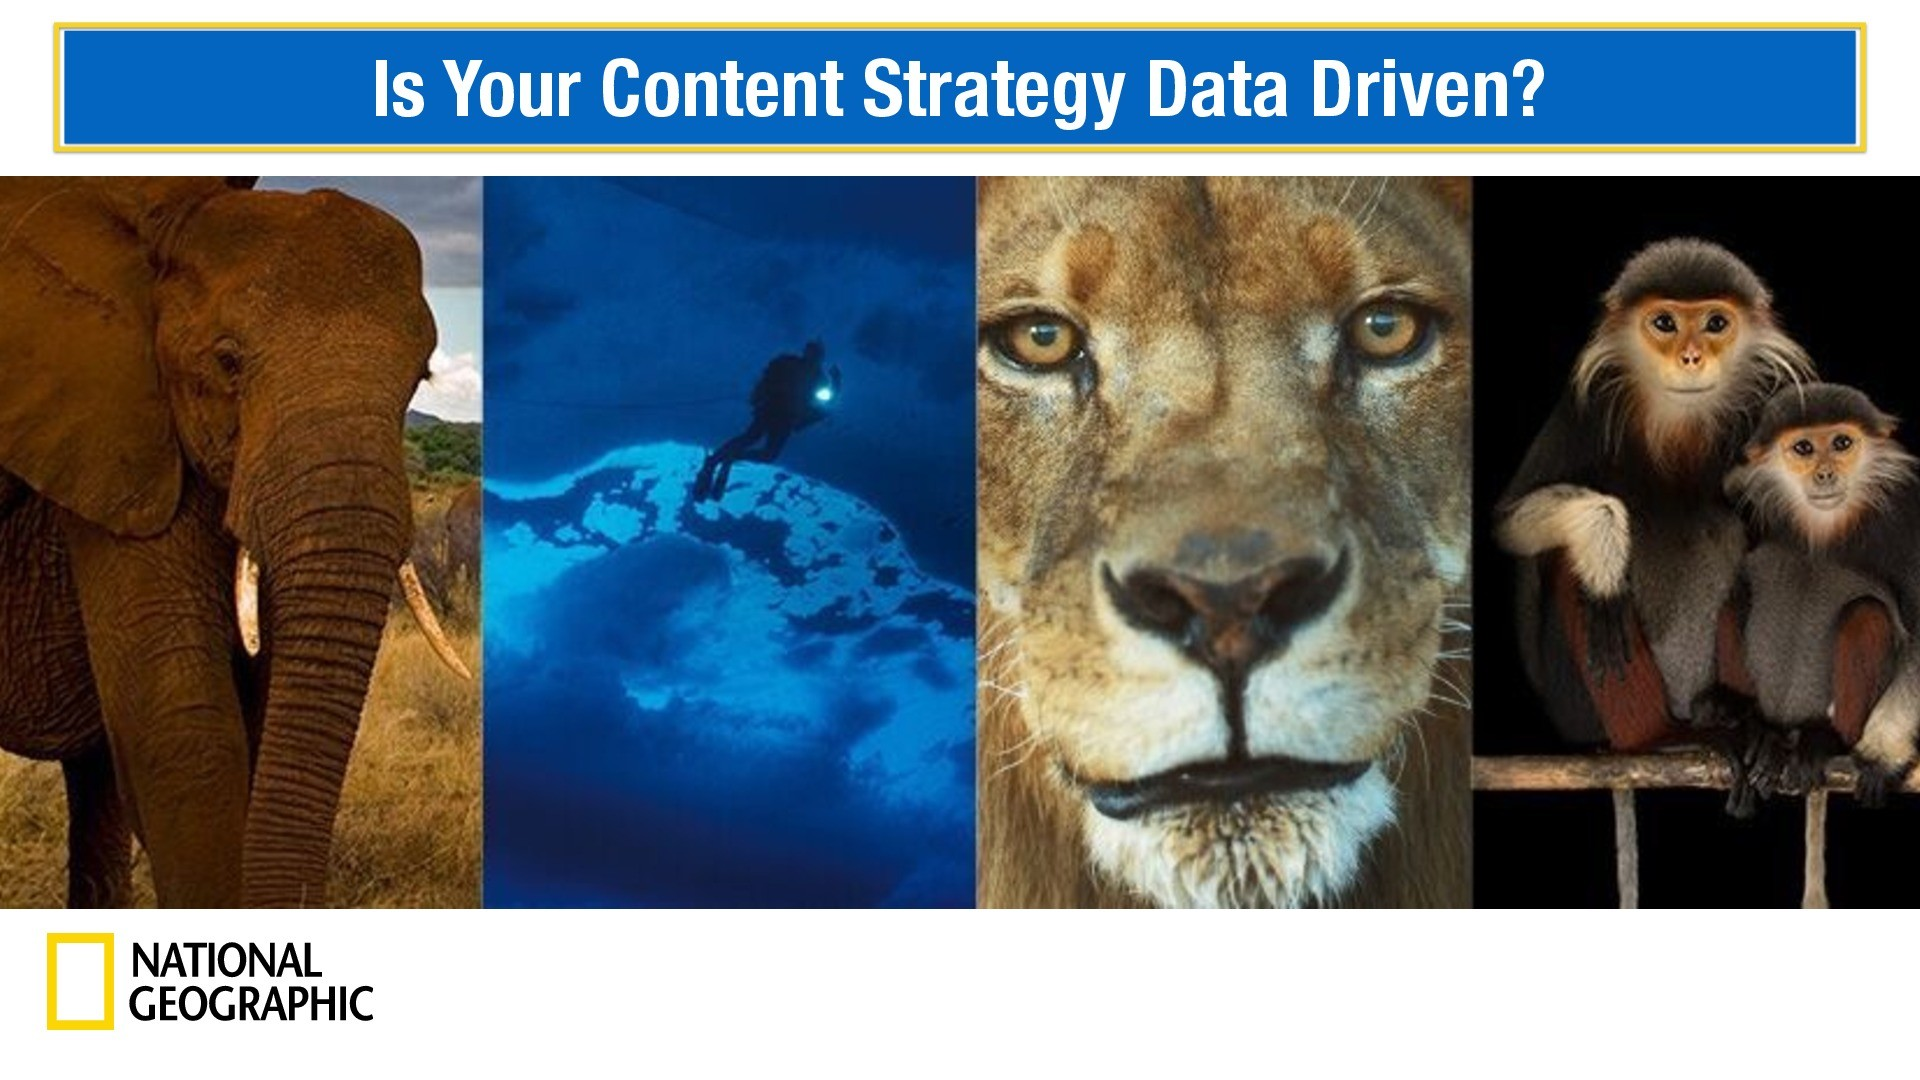 Is Your Content Strategy Data-Driven? presentation image